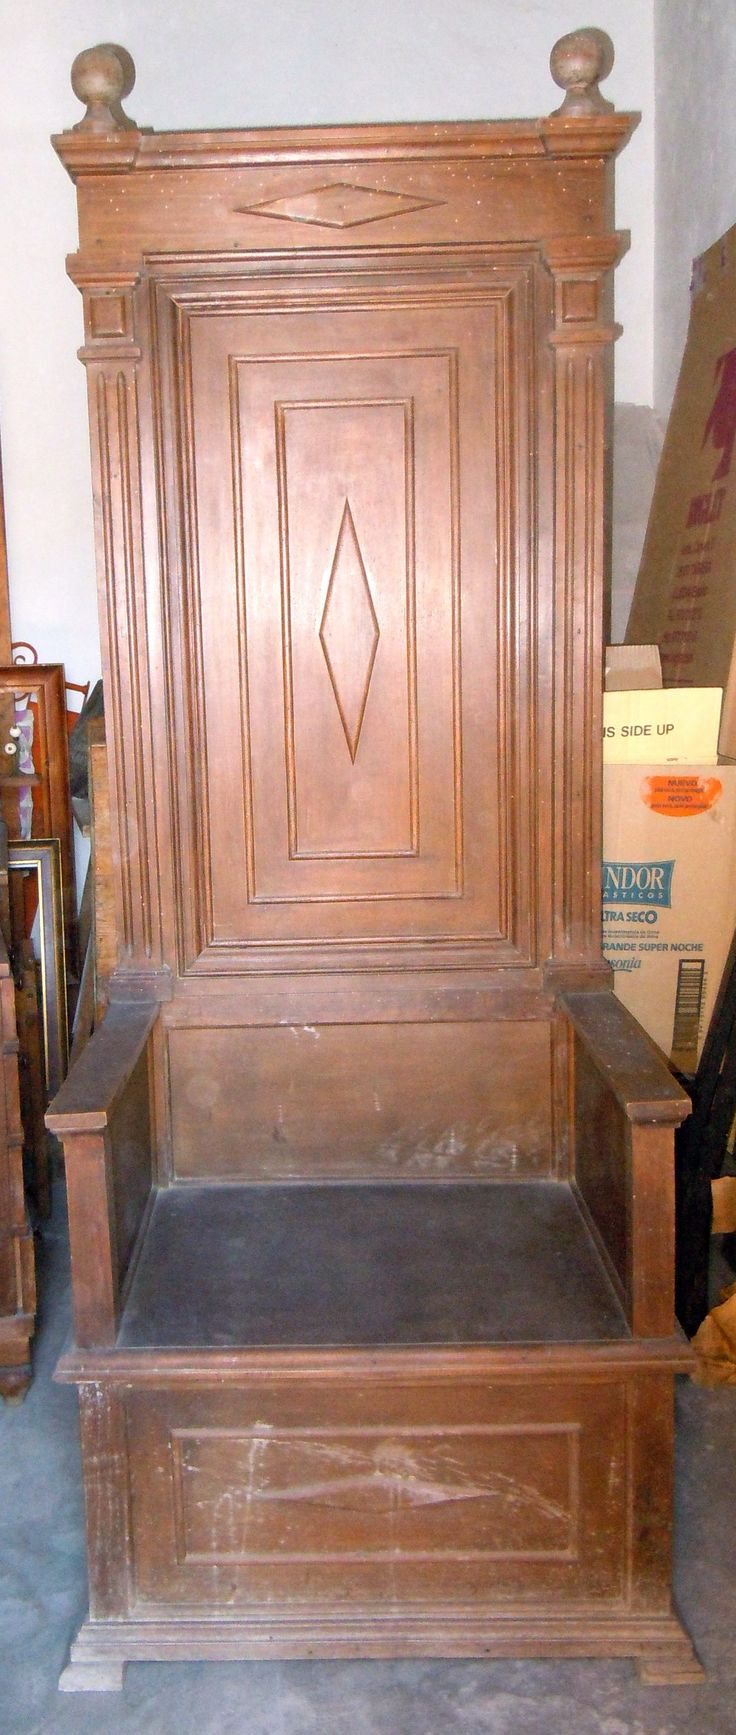 Seat of honour, with a high back and arms, from the late 19th century.  Measurements 2.08 height, 0.79 cm width, 0.59 depths. Cleaning and restoration are needed, because of woodworm attack in the past. The two balls in the upper side are damaged.